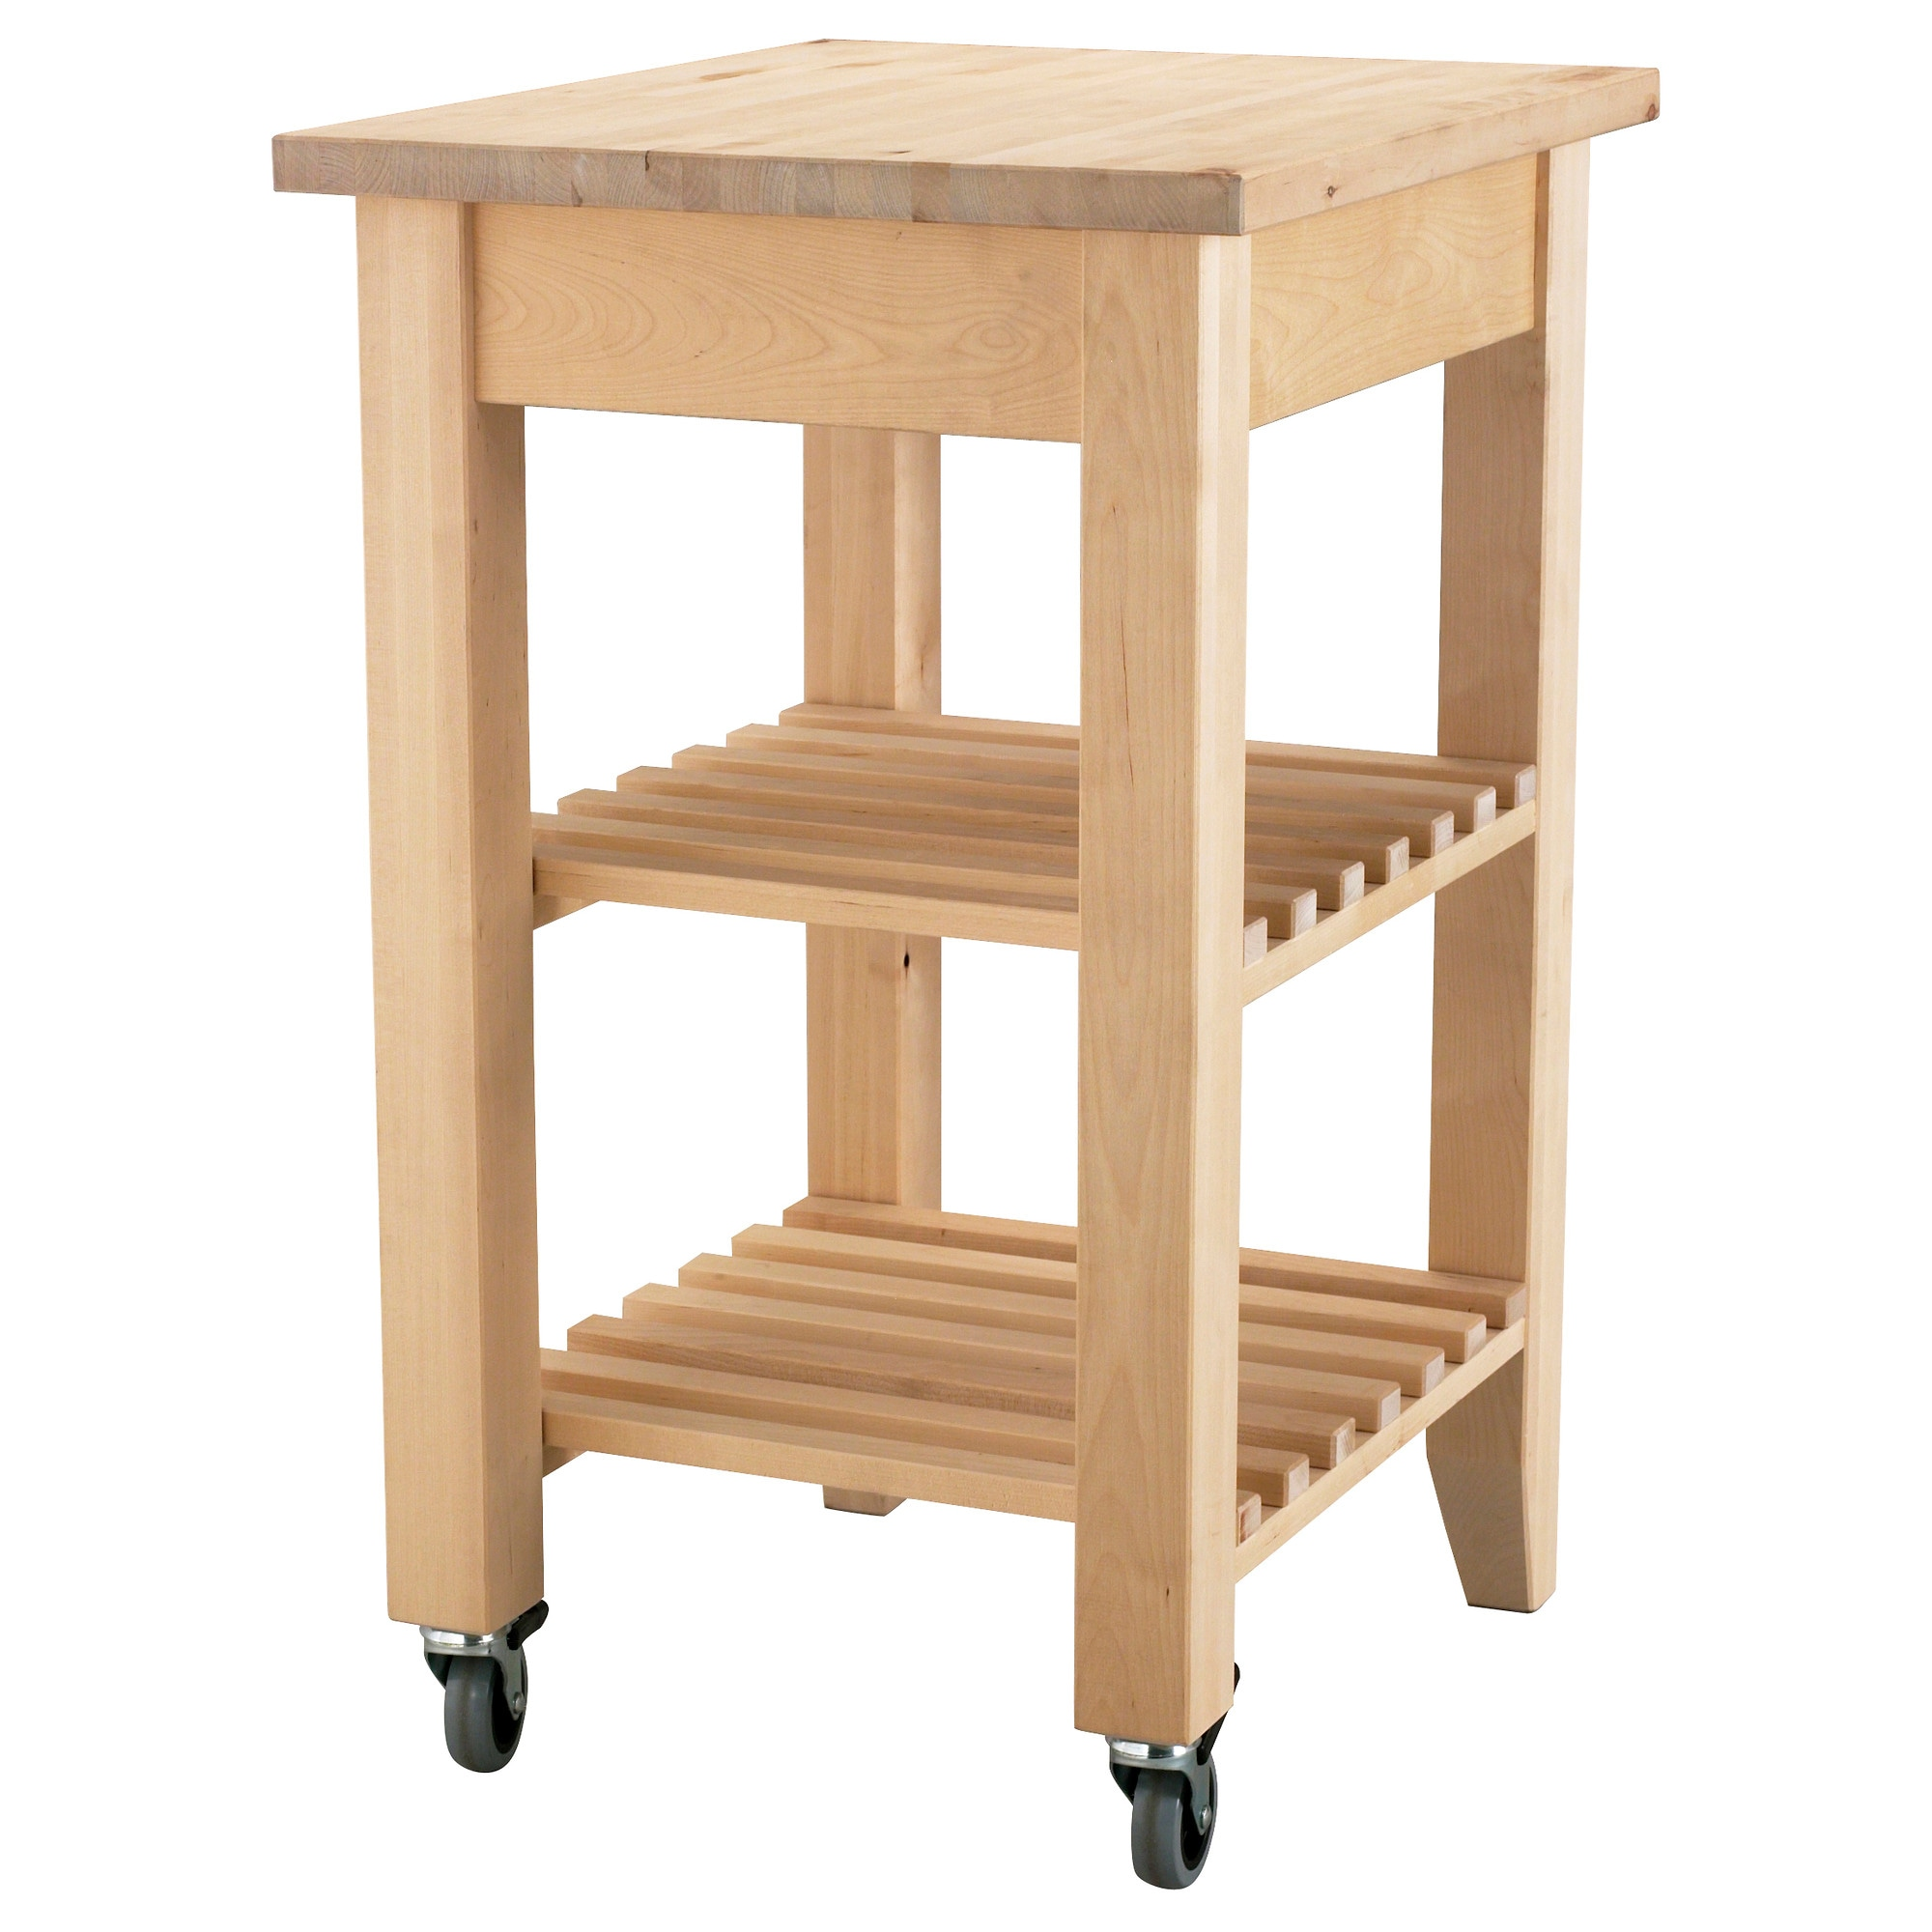 "BEKV""M Kitchen cart IKEA"